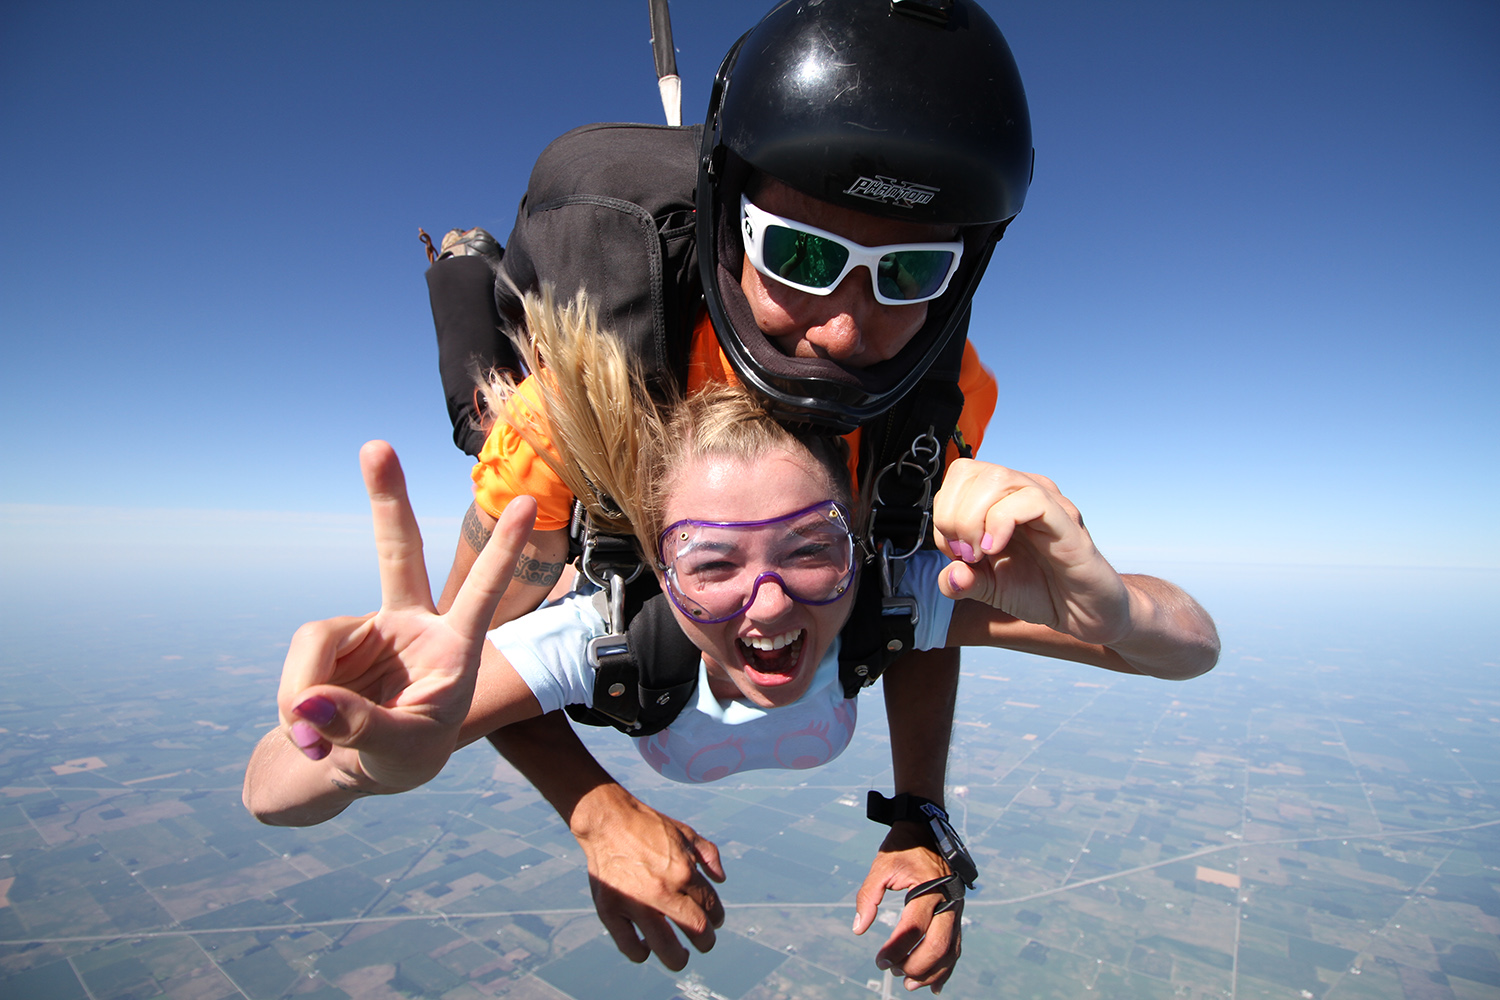 Peace, it's tandem skydive time